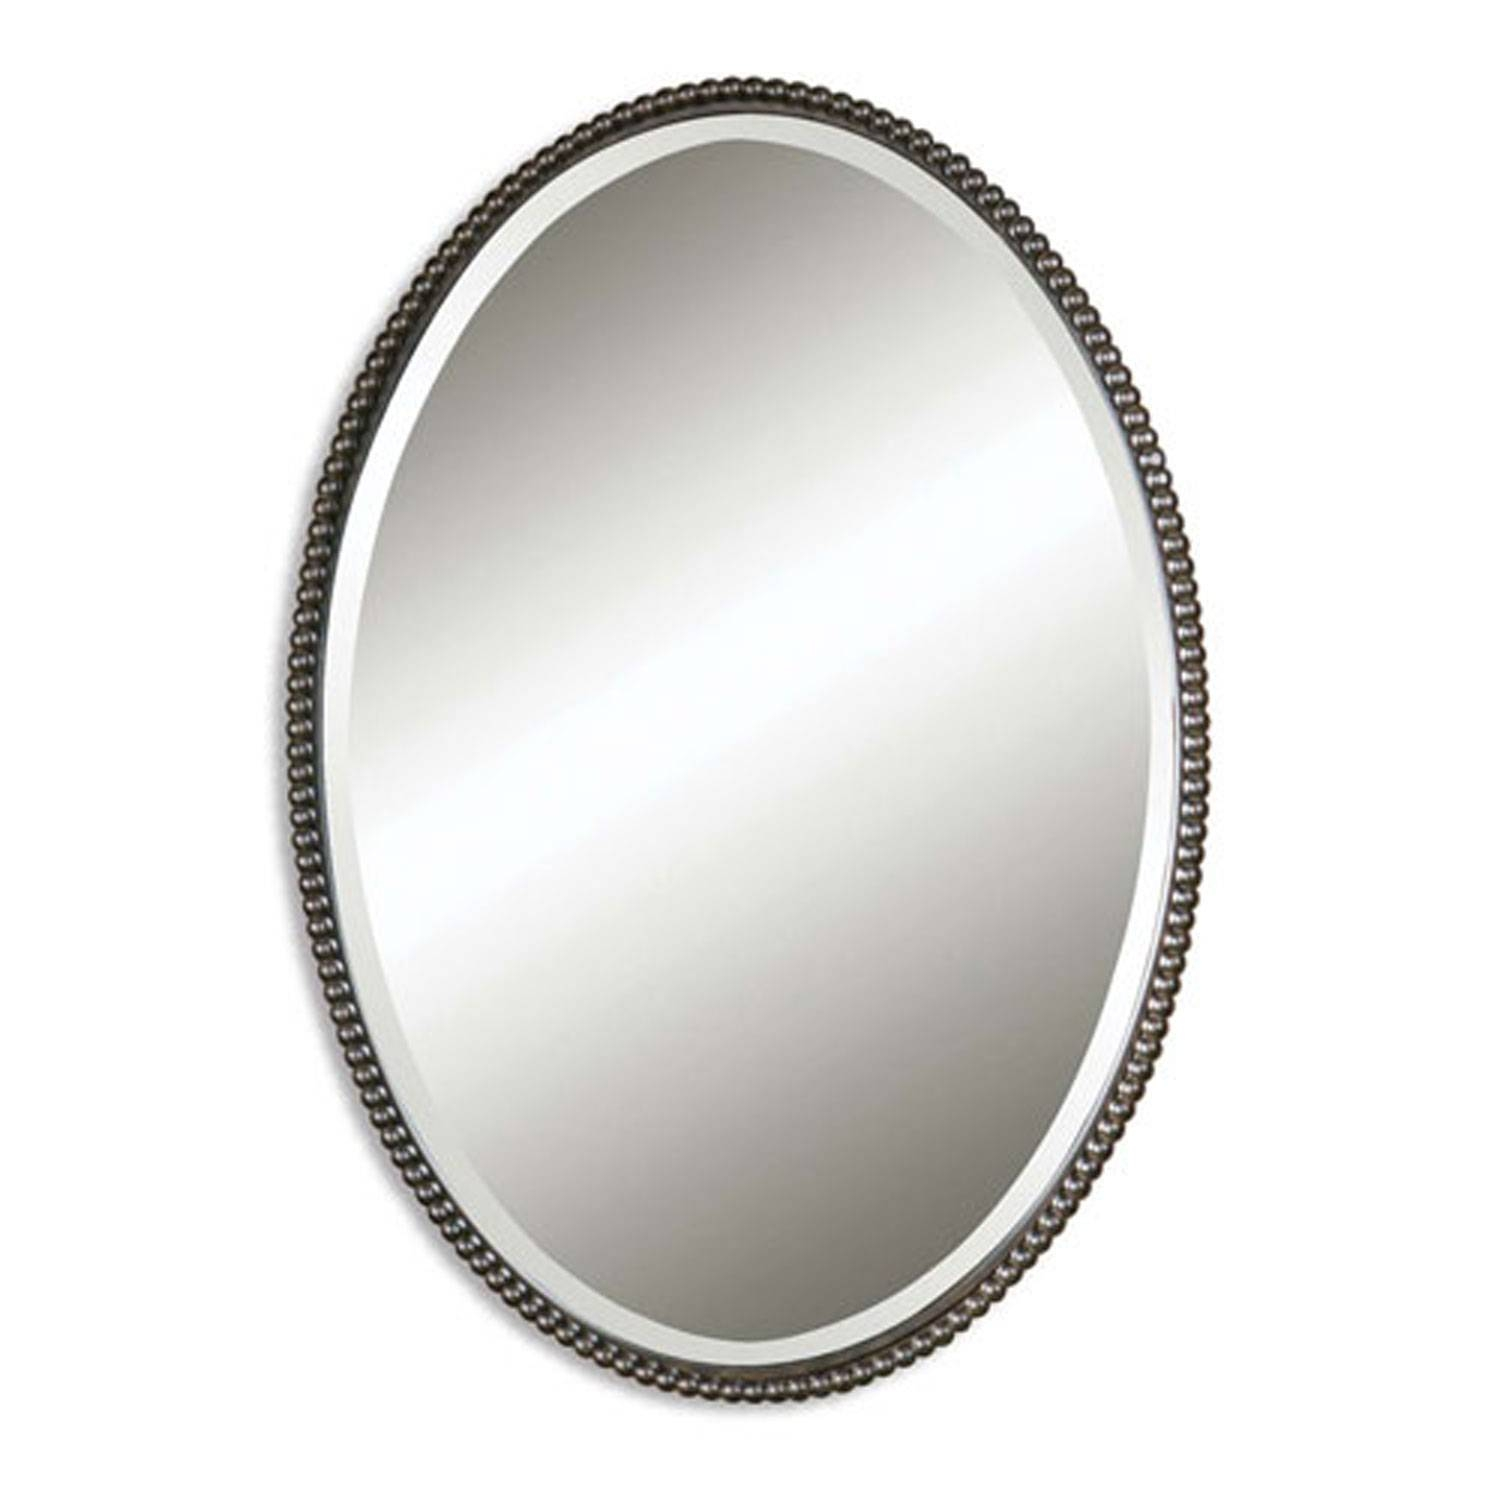 Sherise Oval Mirror Uttermost Wall Mirror Mirrors Home Decor With Regard To Silver Oval Mirrors (View 20 of 25)